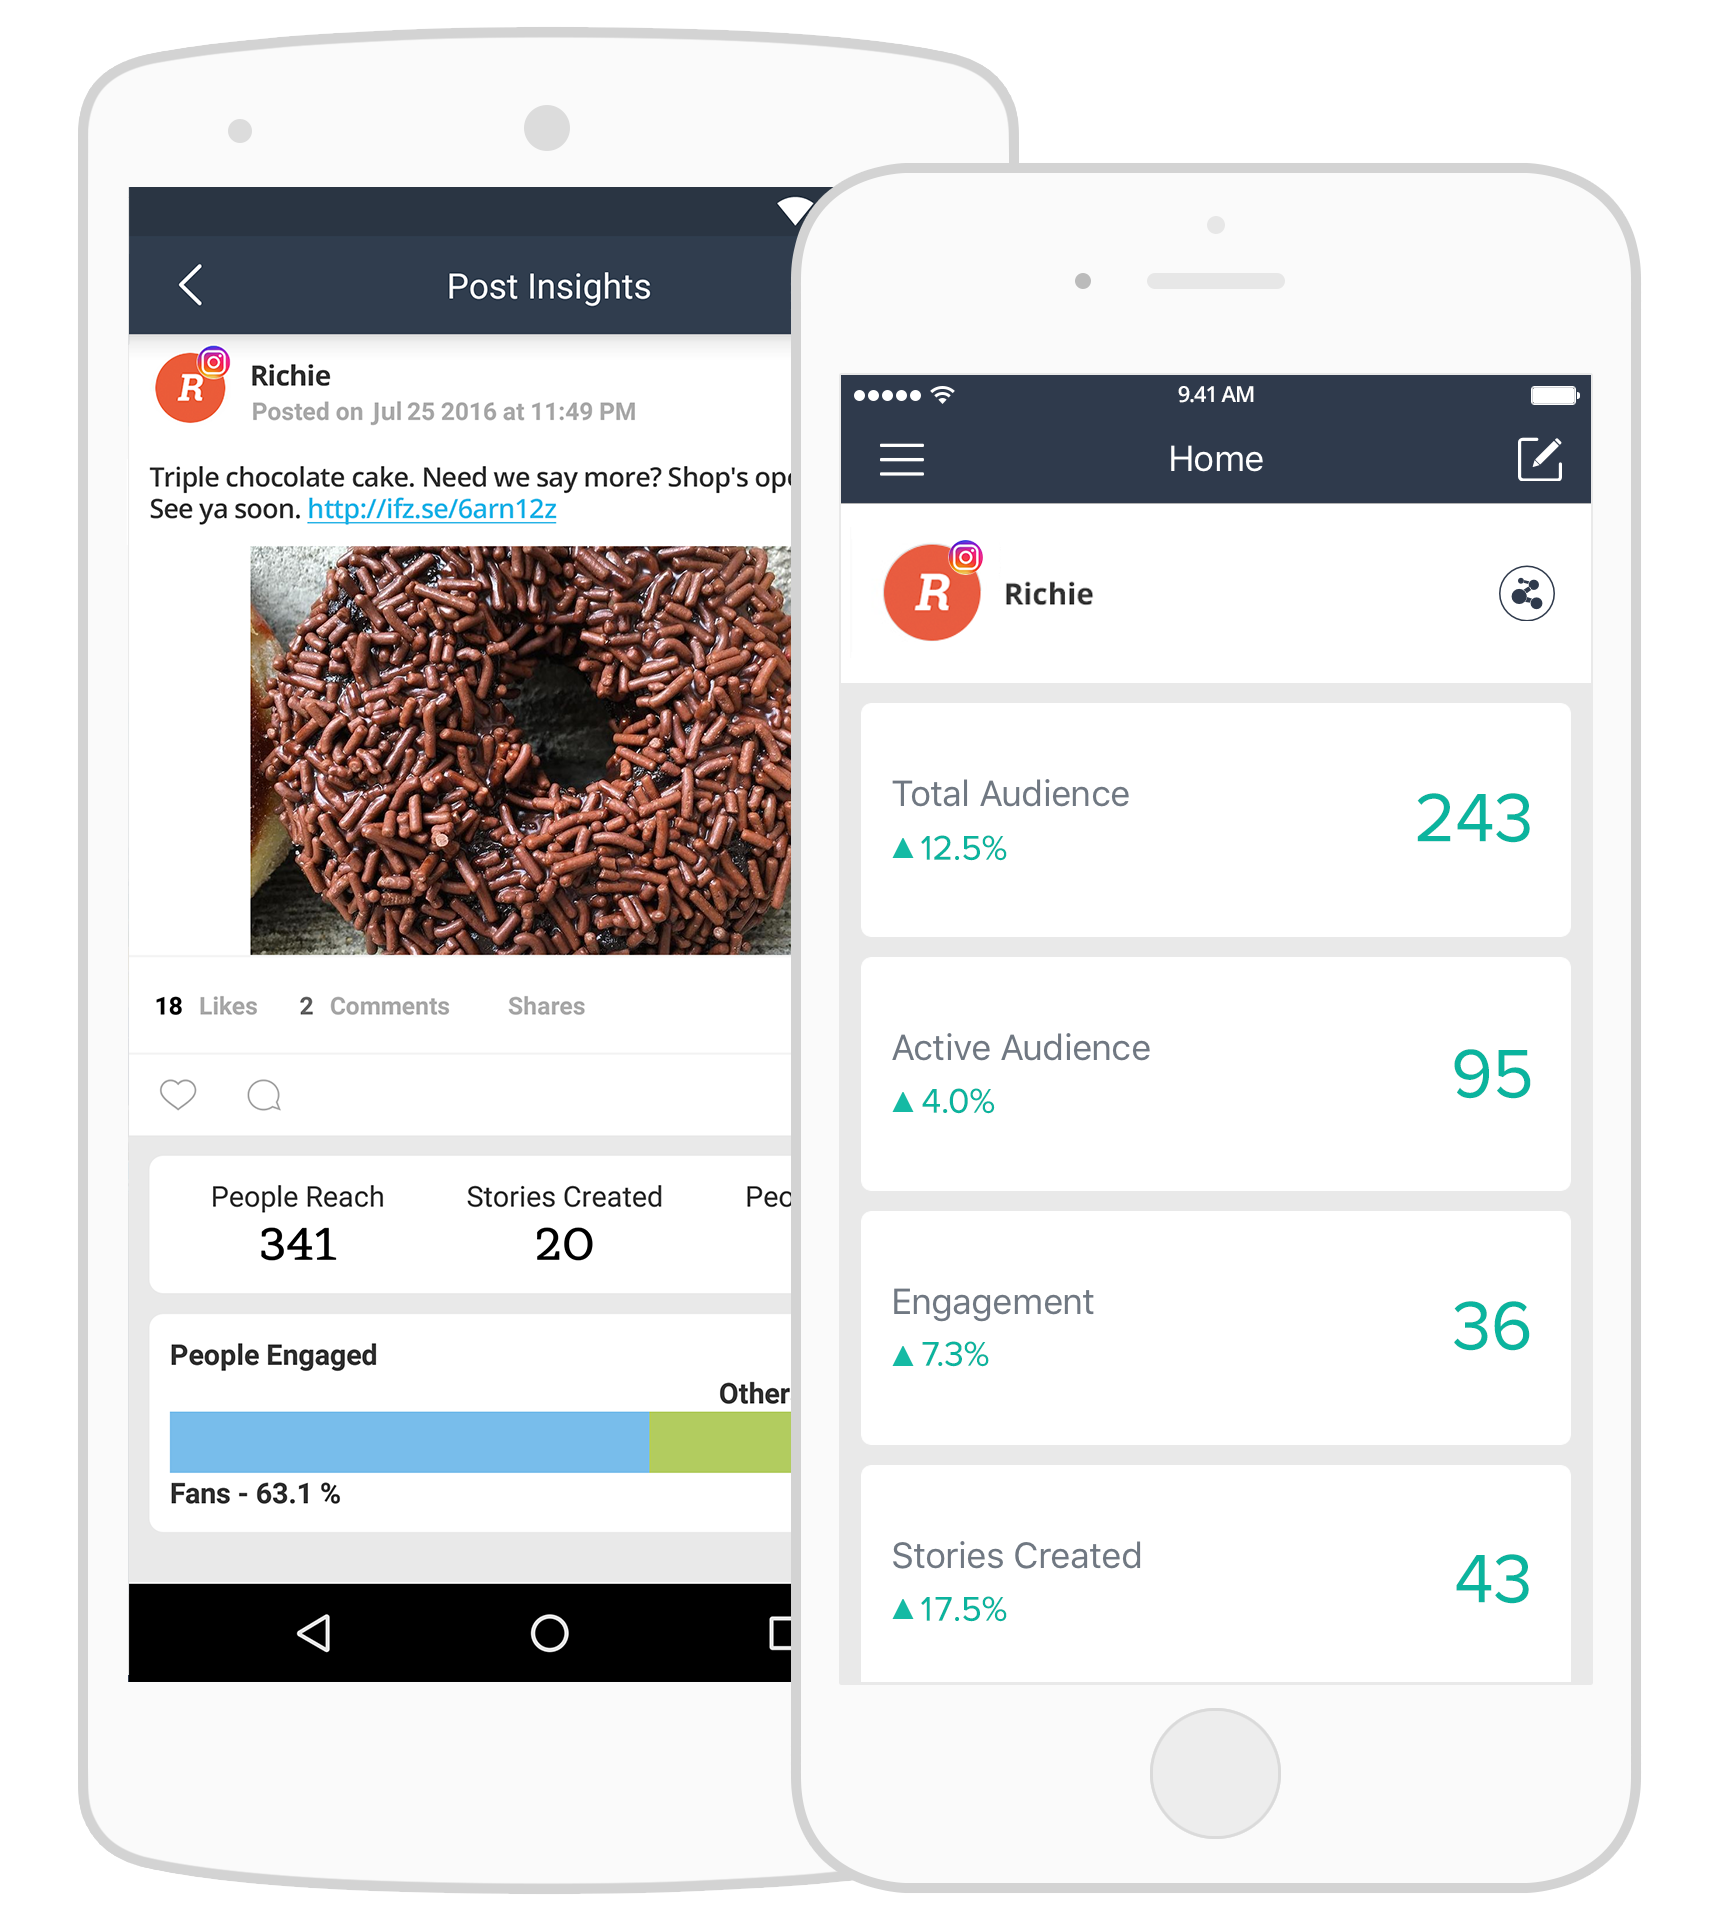 Manage your social media on the go!